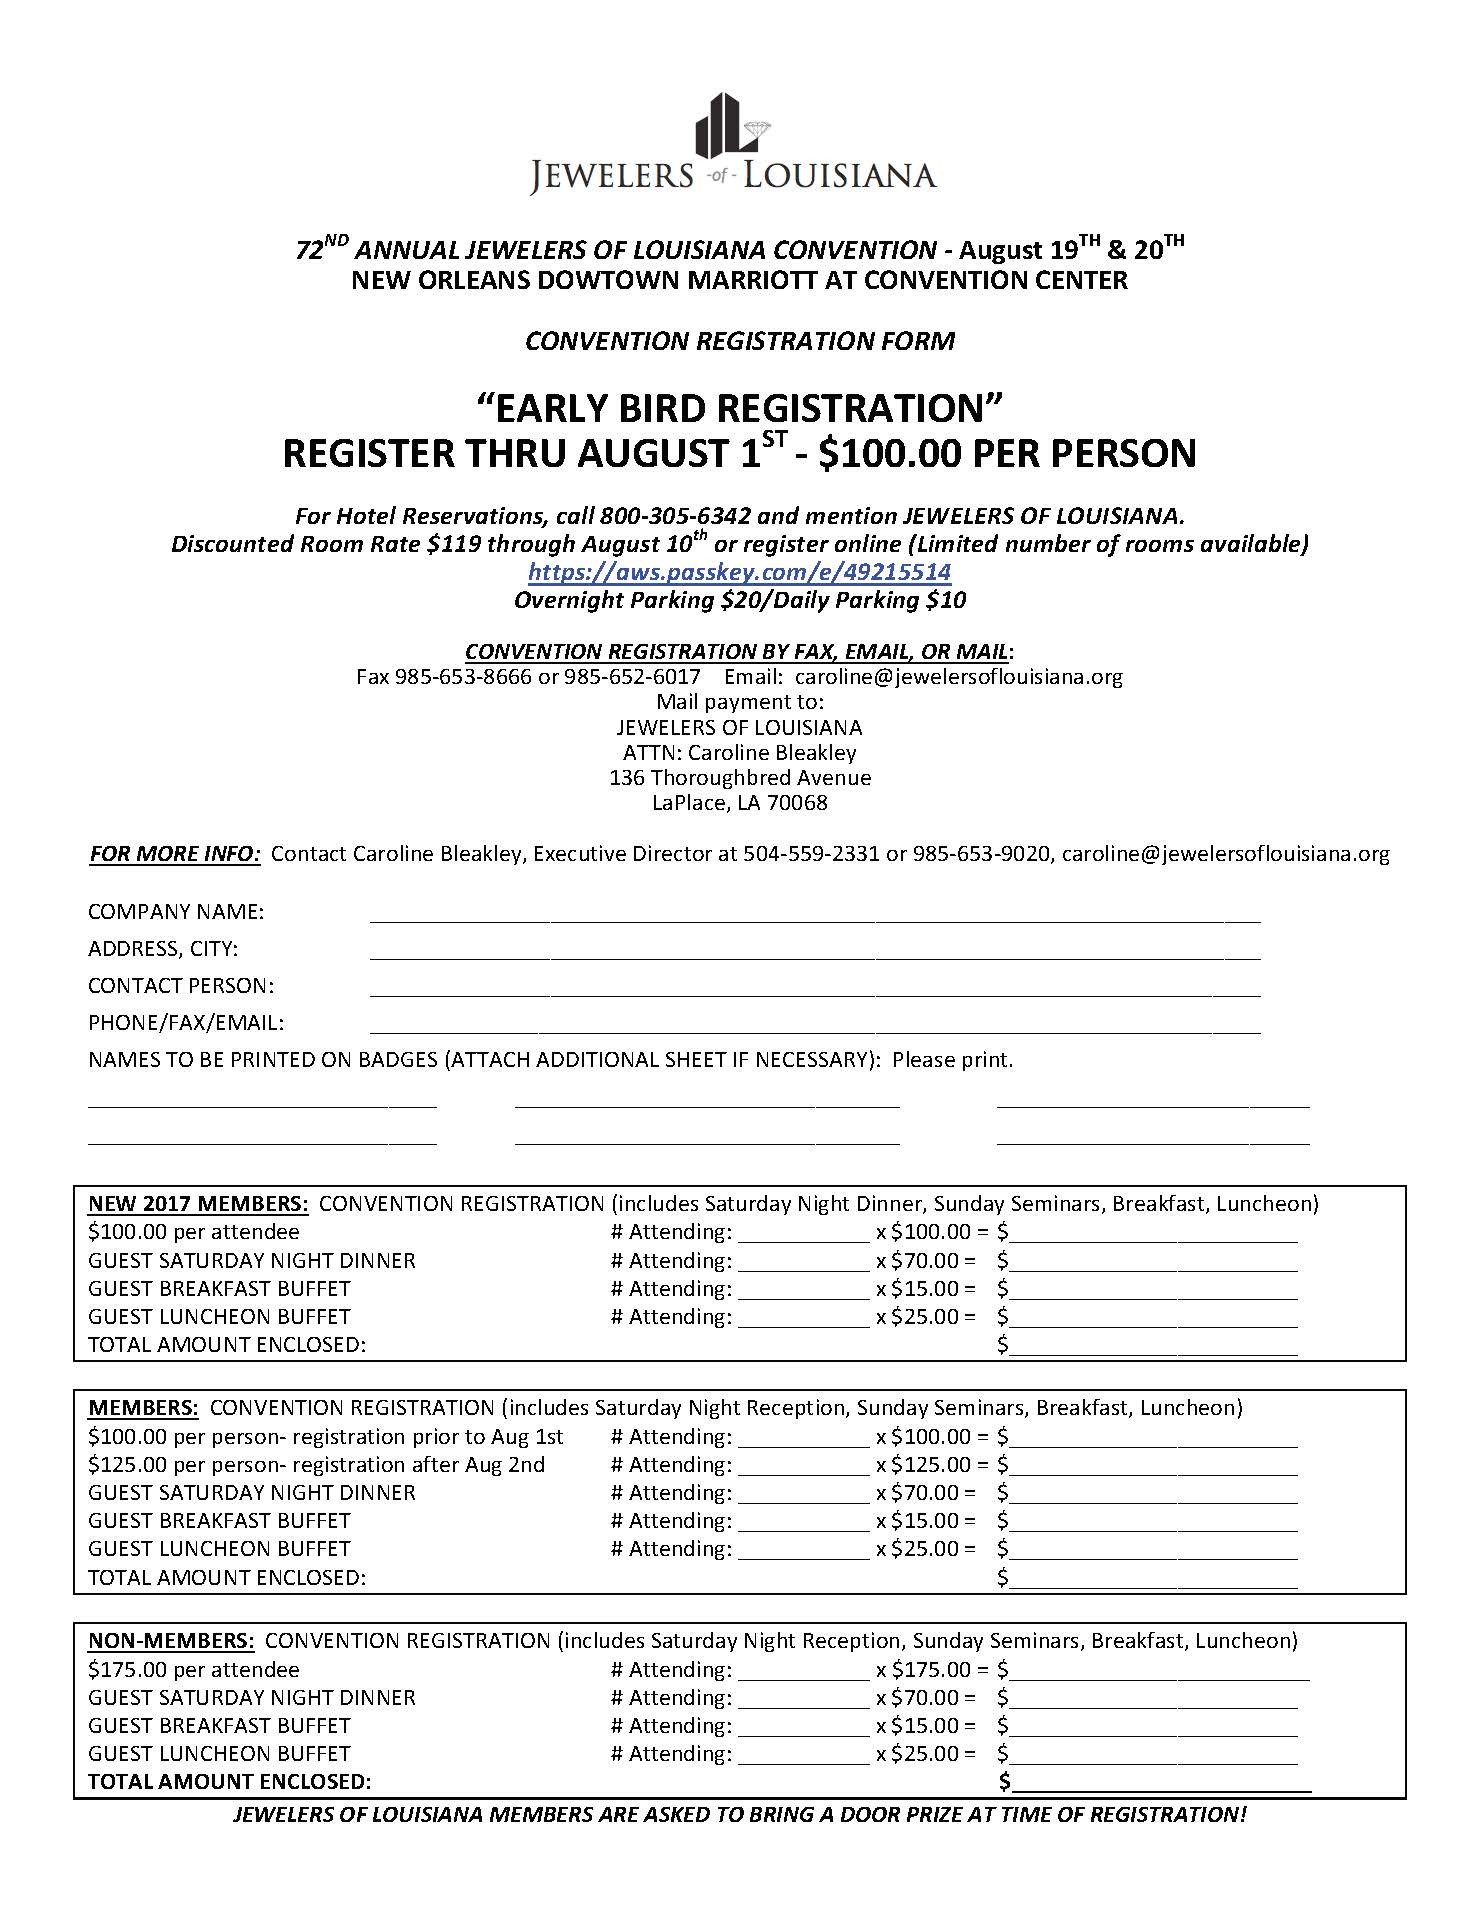 CONVENTION REGISTRATION FORM 2017